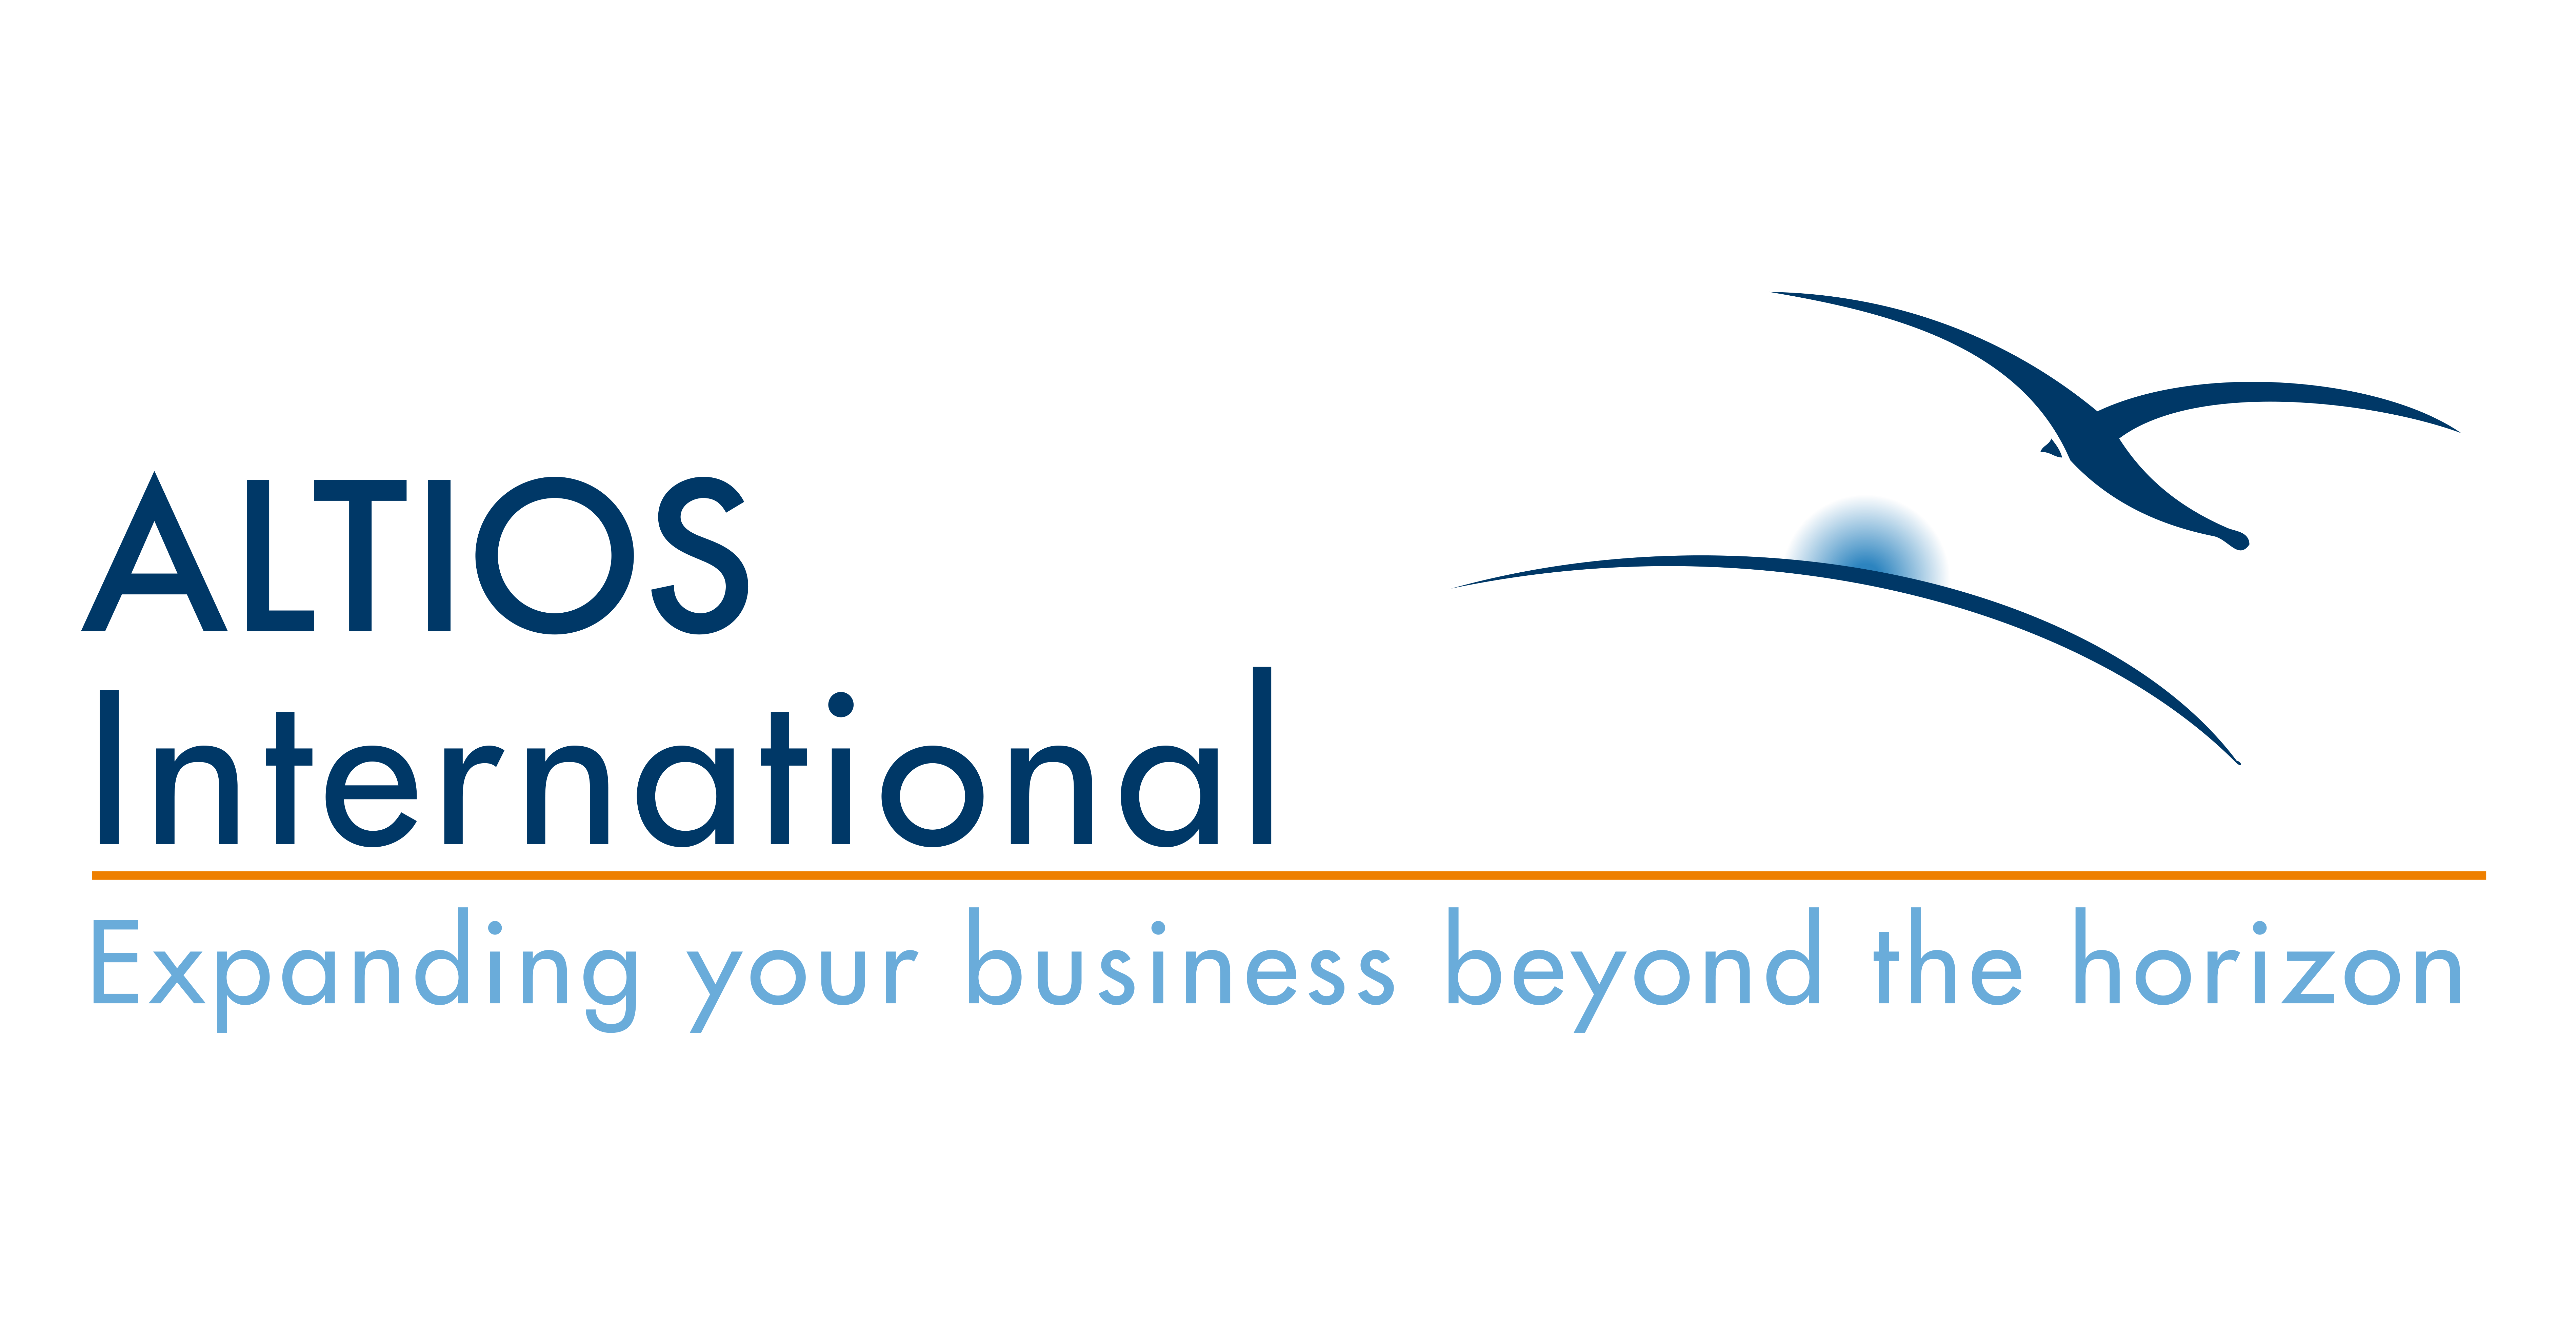 logo altios international